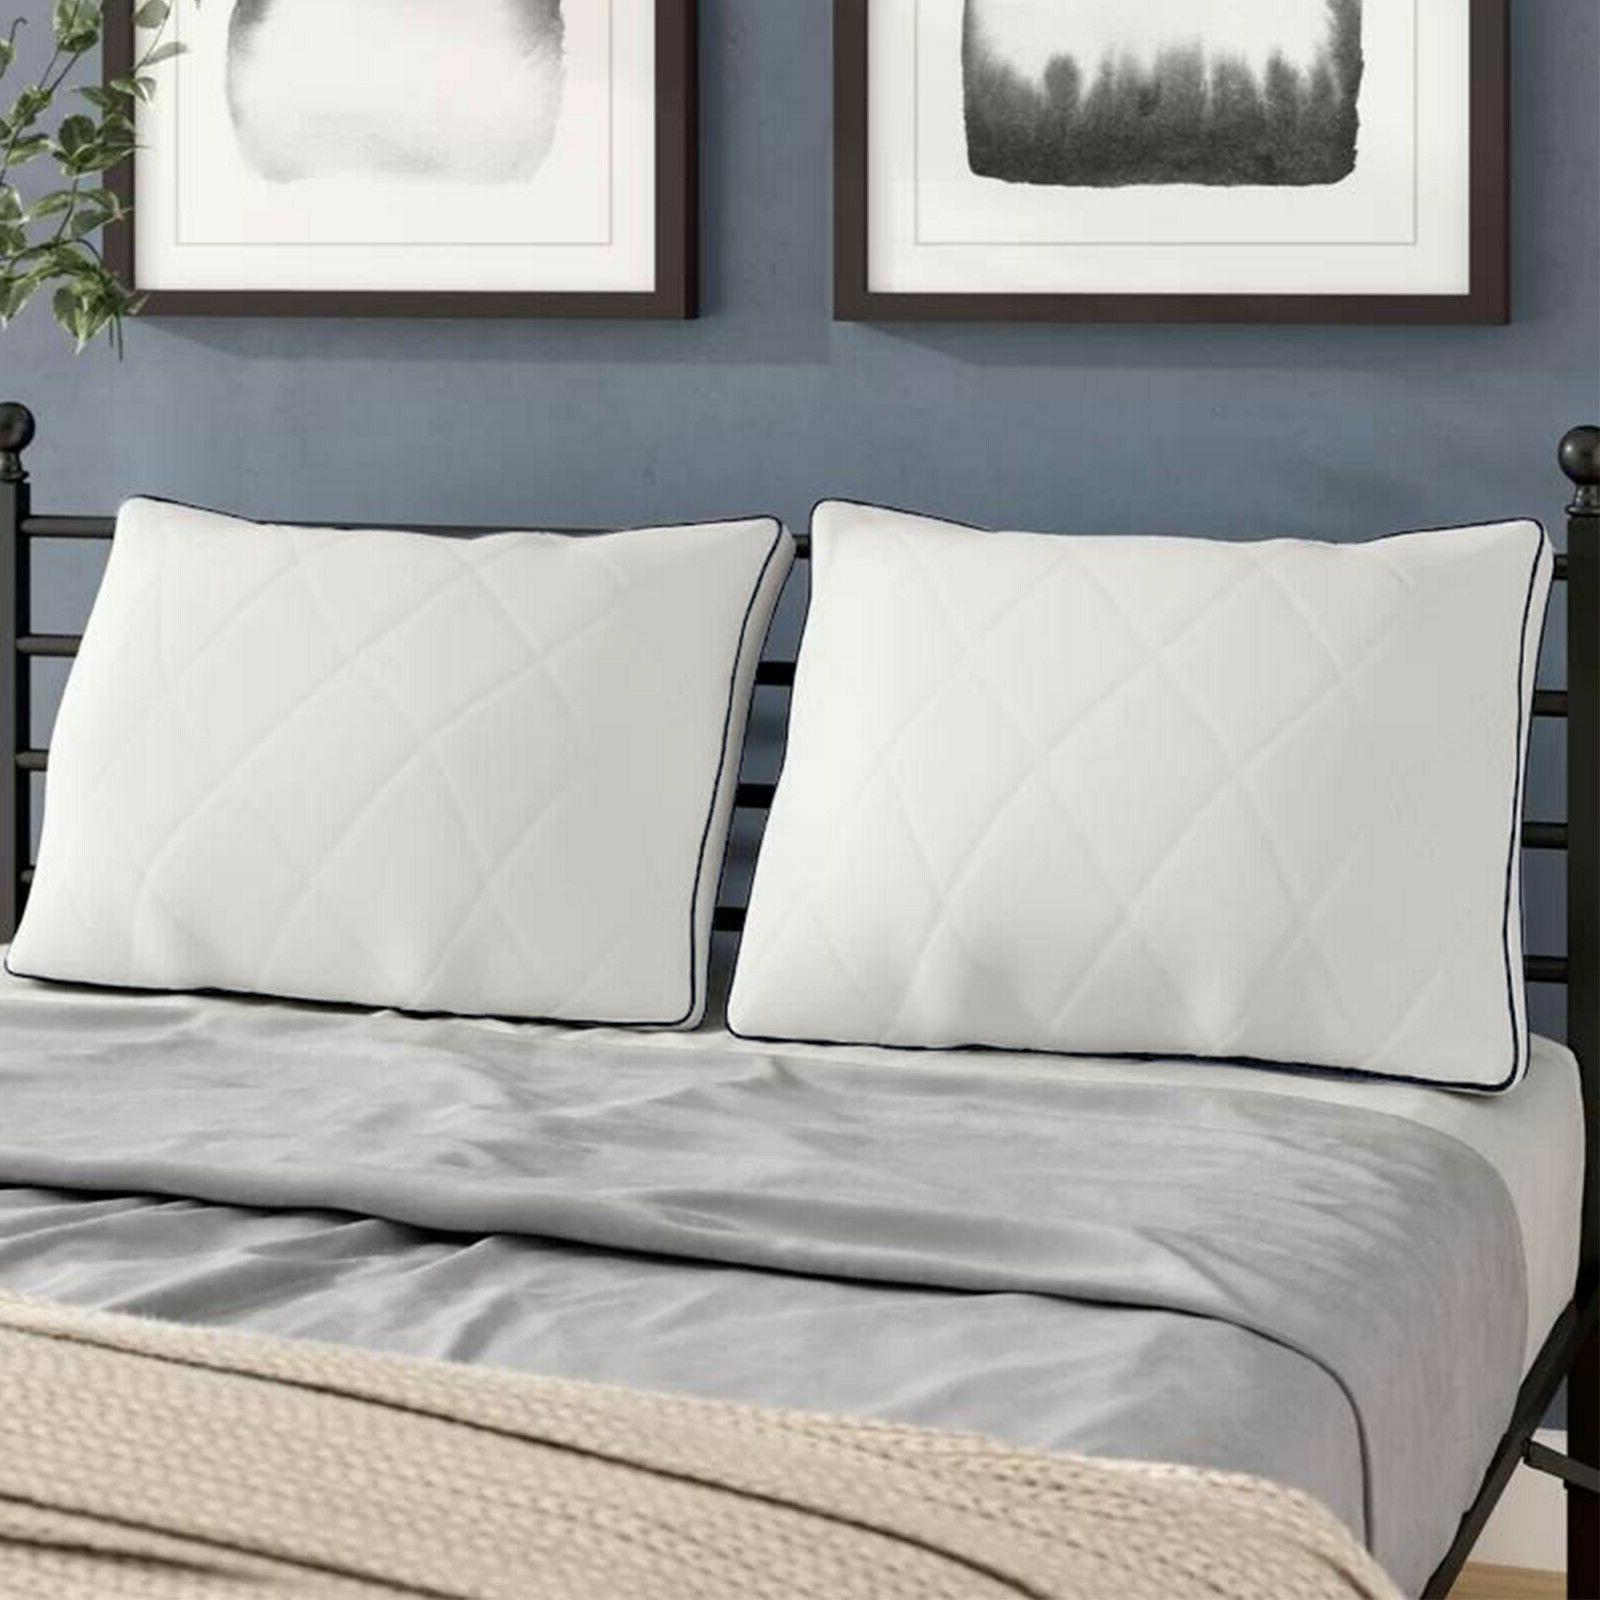 Grey Gusseted Set 2 Luxury Pillows King Size